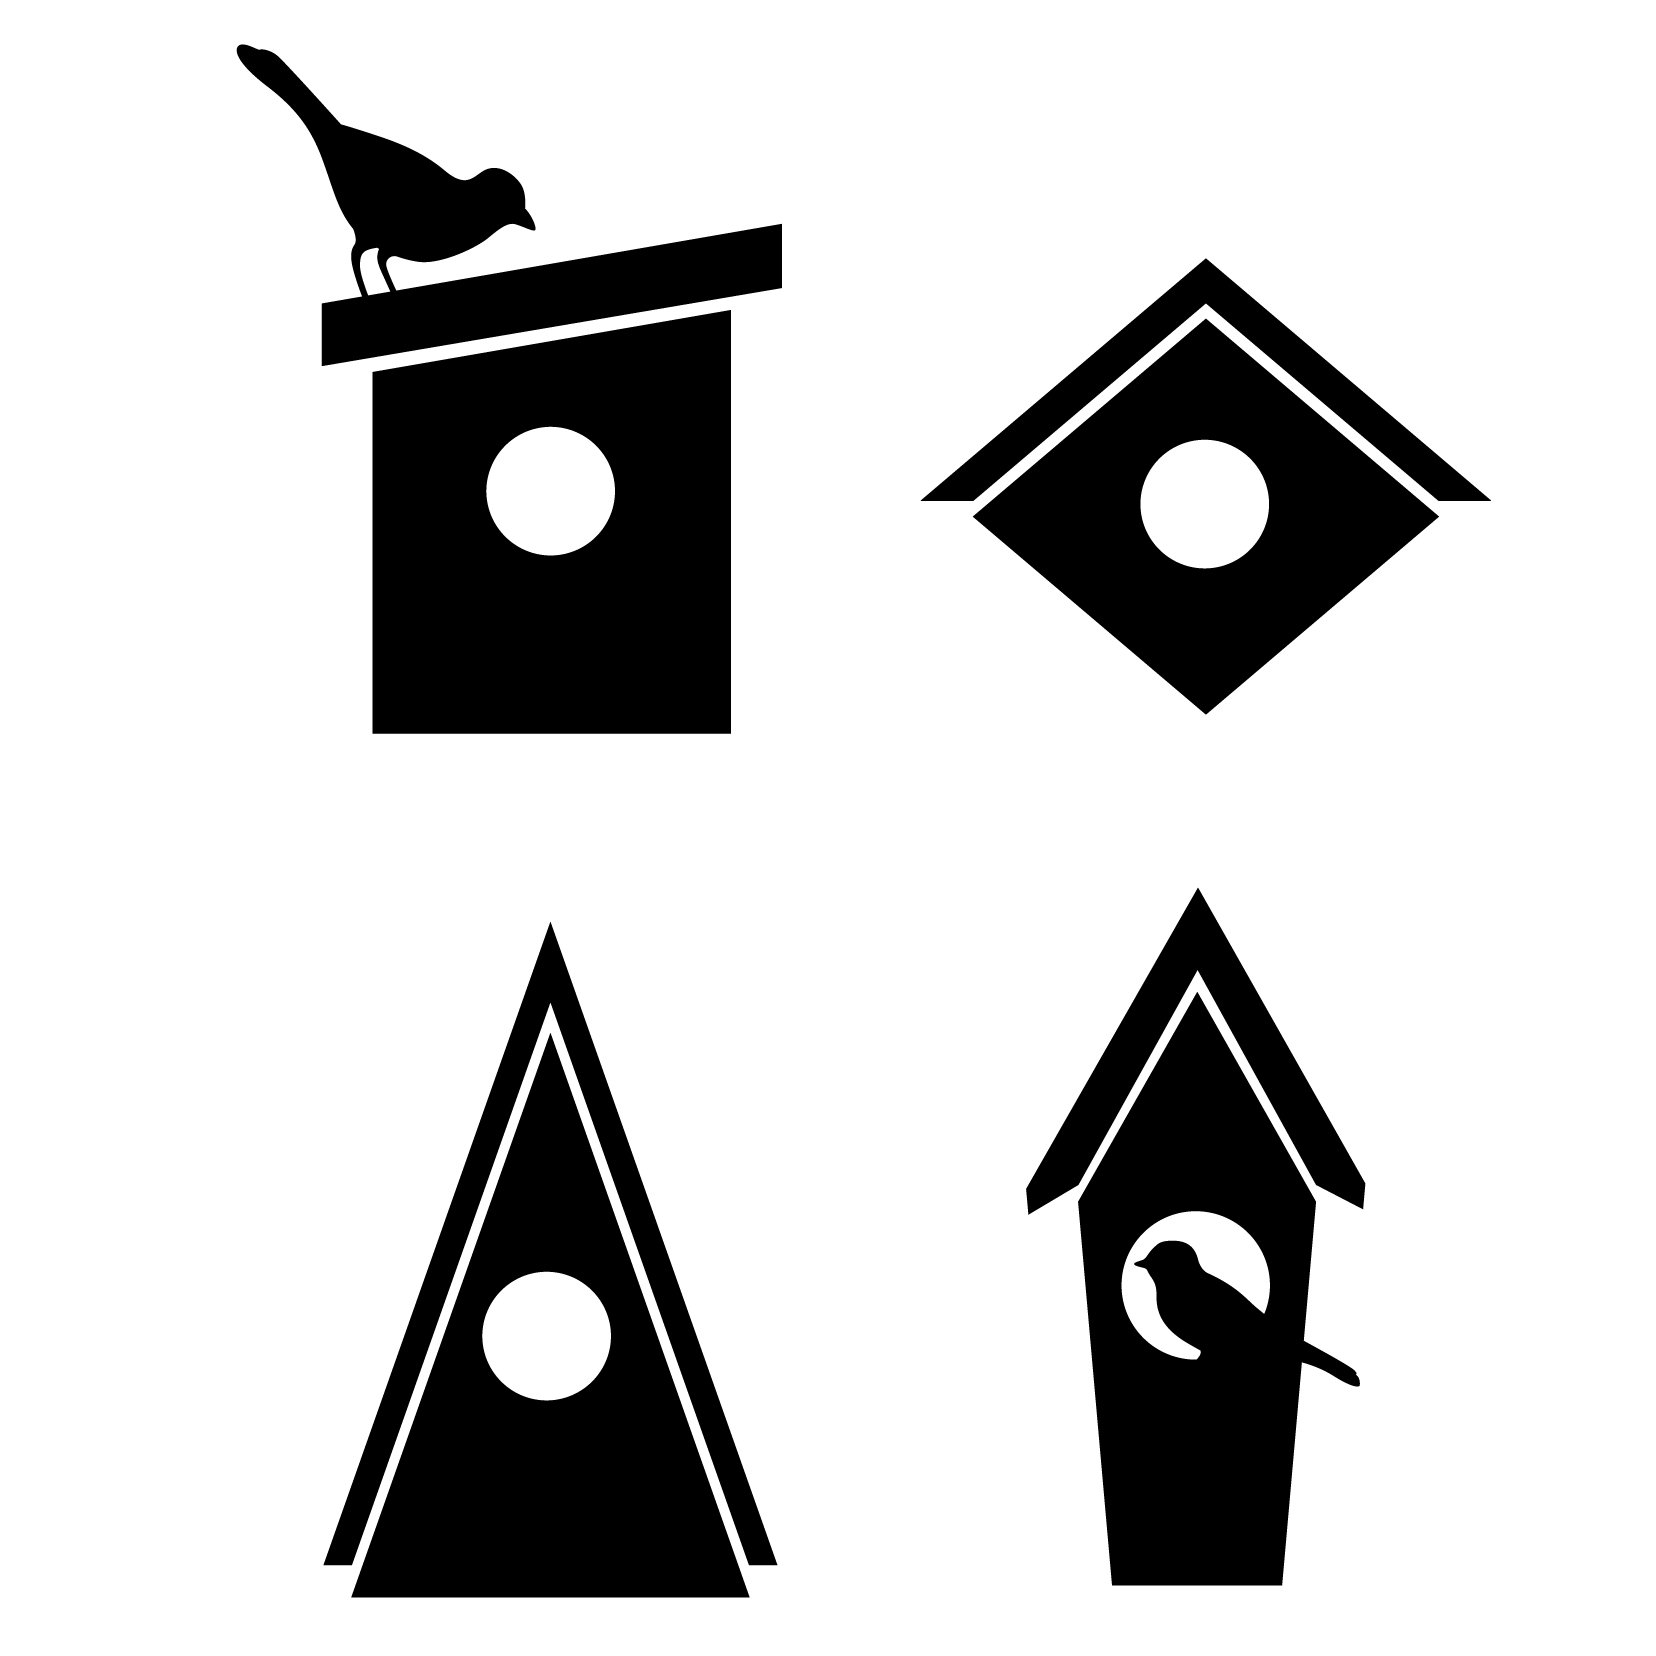 Birdhouses Icons Pattern - 20 Icons - Vinyl Wall Art Decal for Homes, Offices, Kids Rooms, Nurseries, Schools, High Schools, Colleges, Universities, Interior Designers, Architects, Remodelers